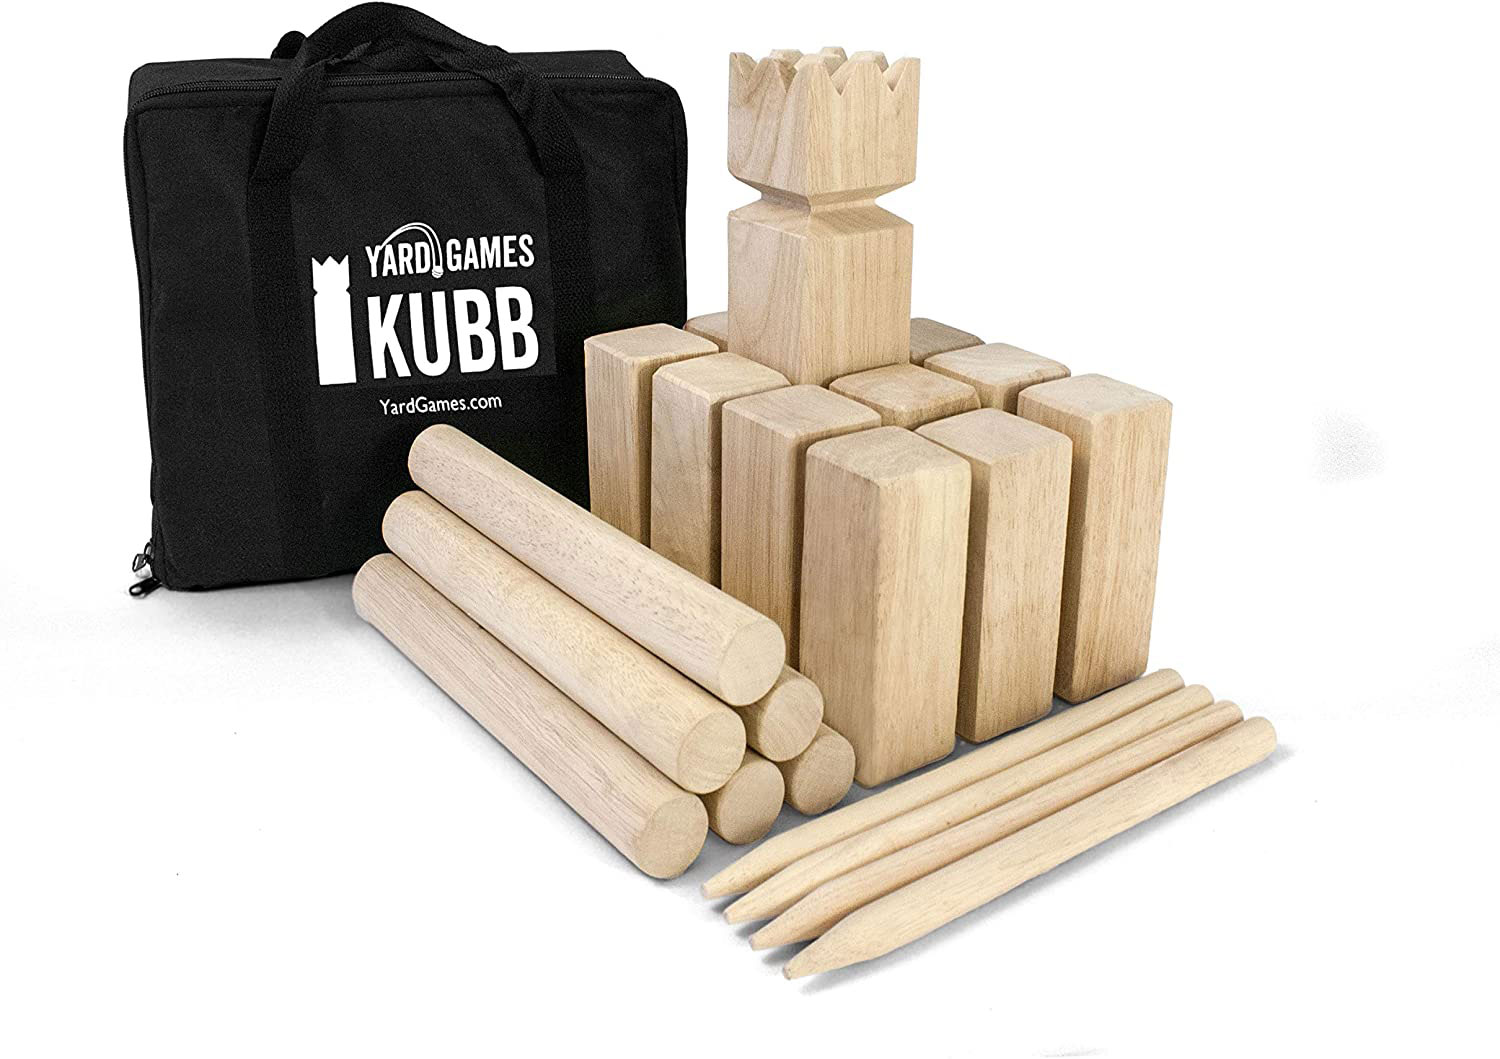 Father's Day gift ideas - Kubb yard game